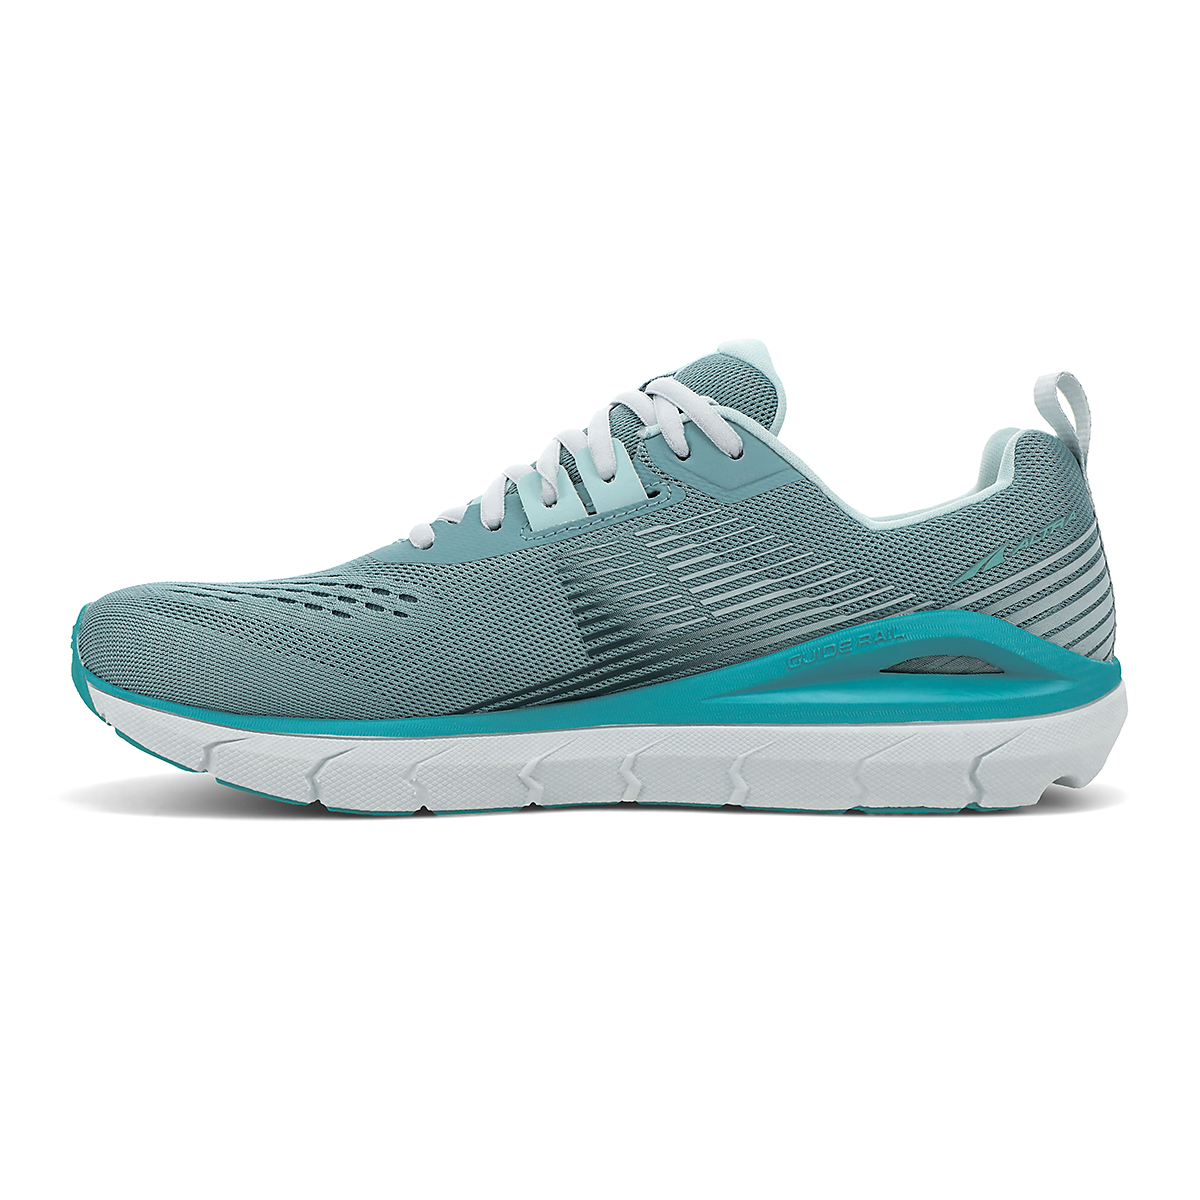 Women's Altra Provision 5 Running Shoe - Color: Teal/Green - Size: 5.5 - Width: Regular, Teal/Green, large, image 2